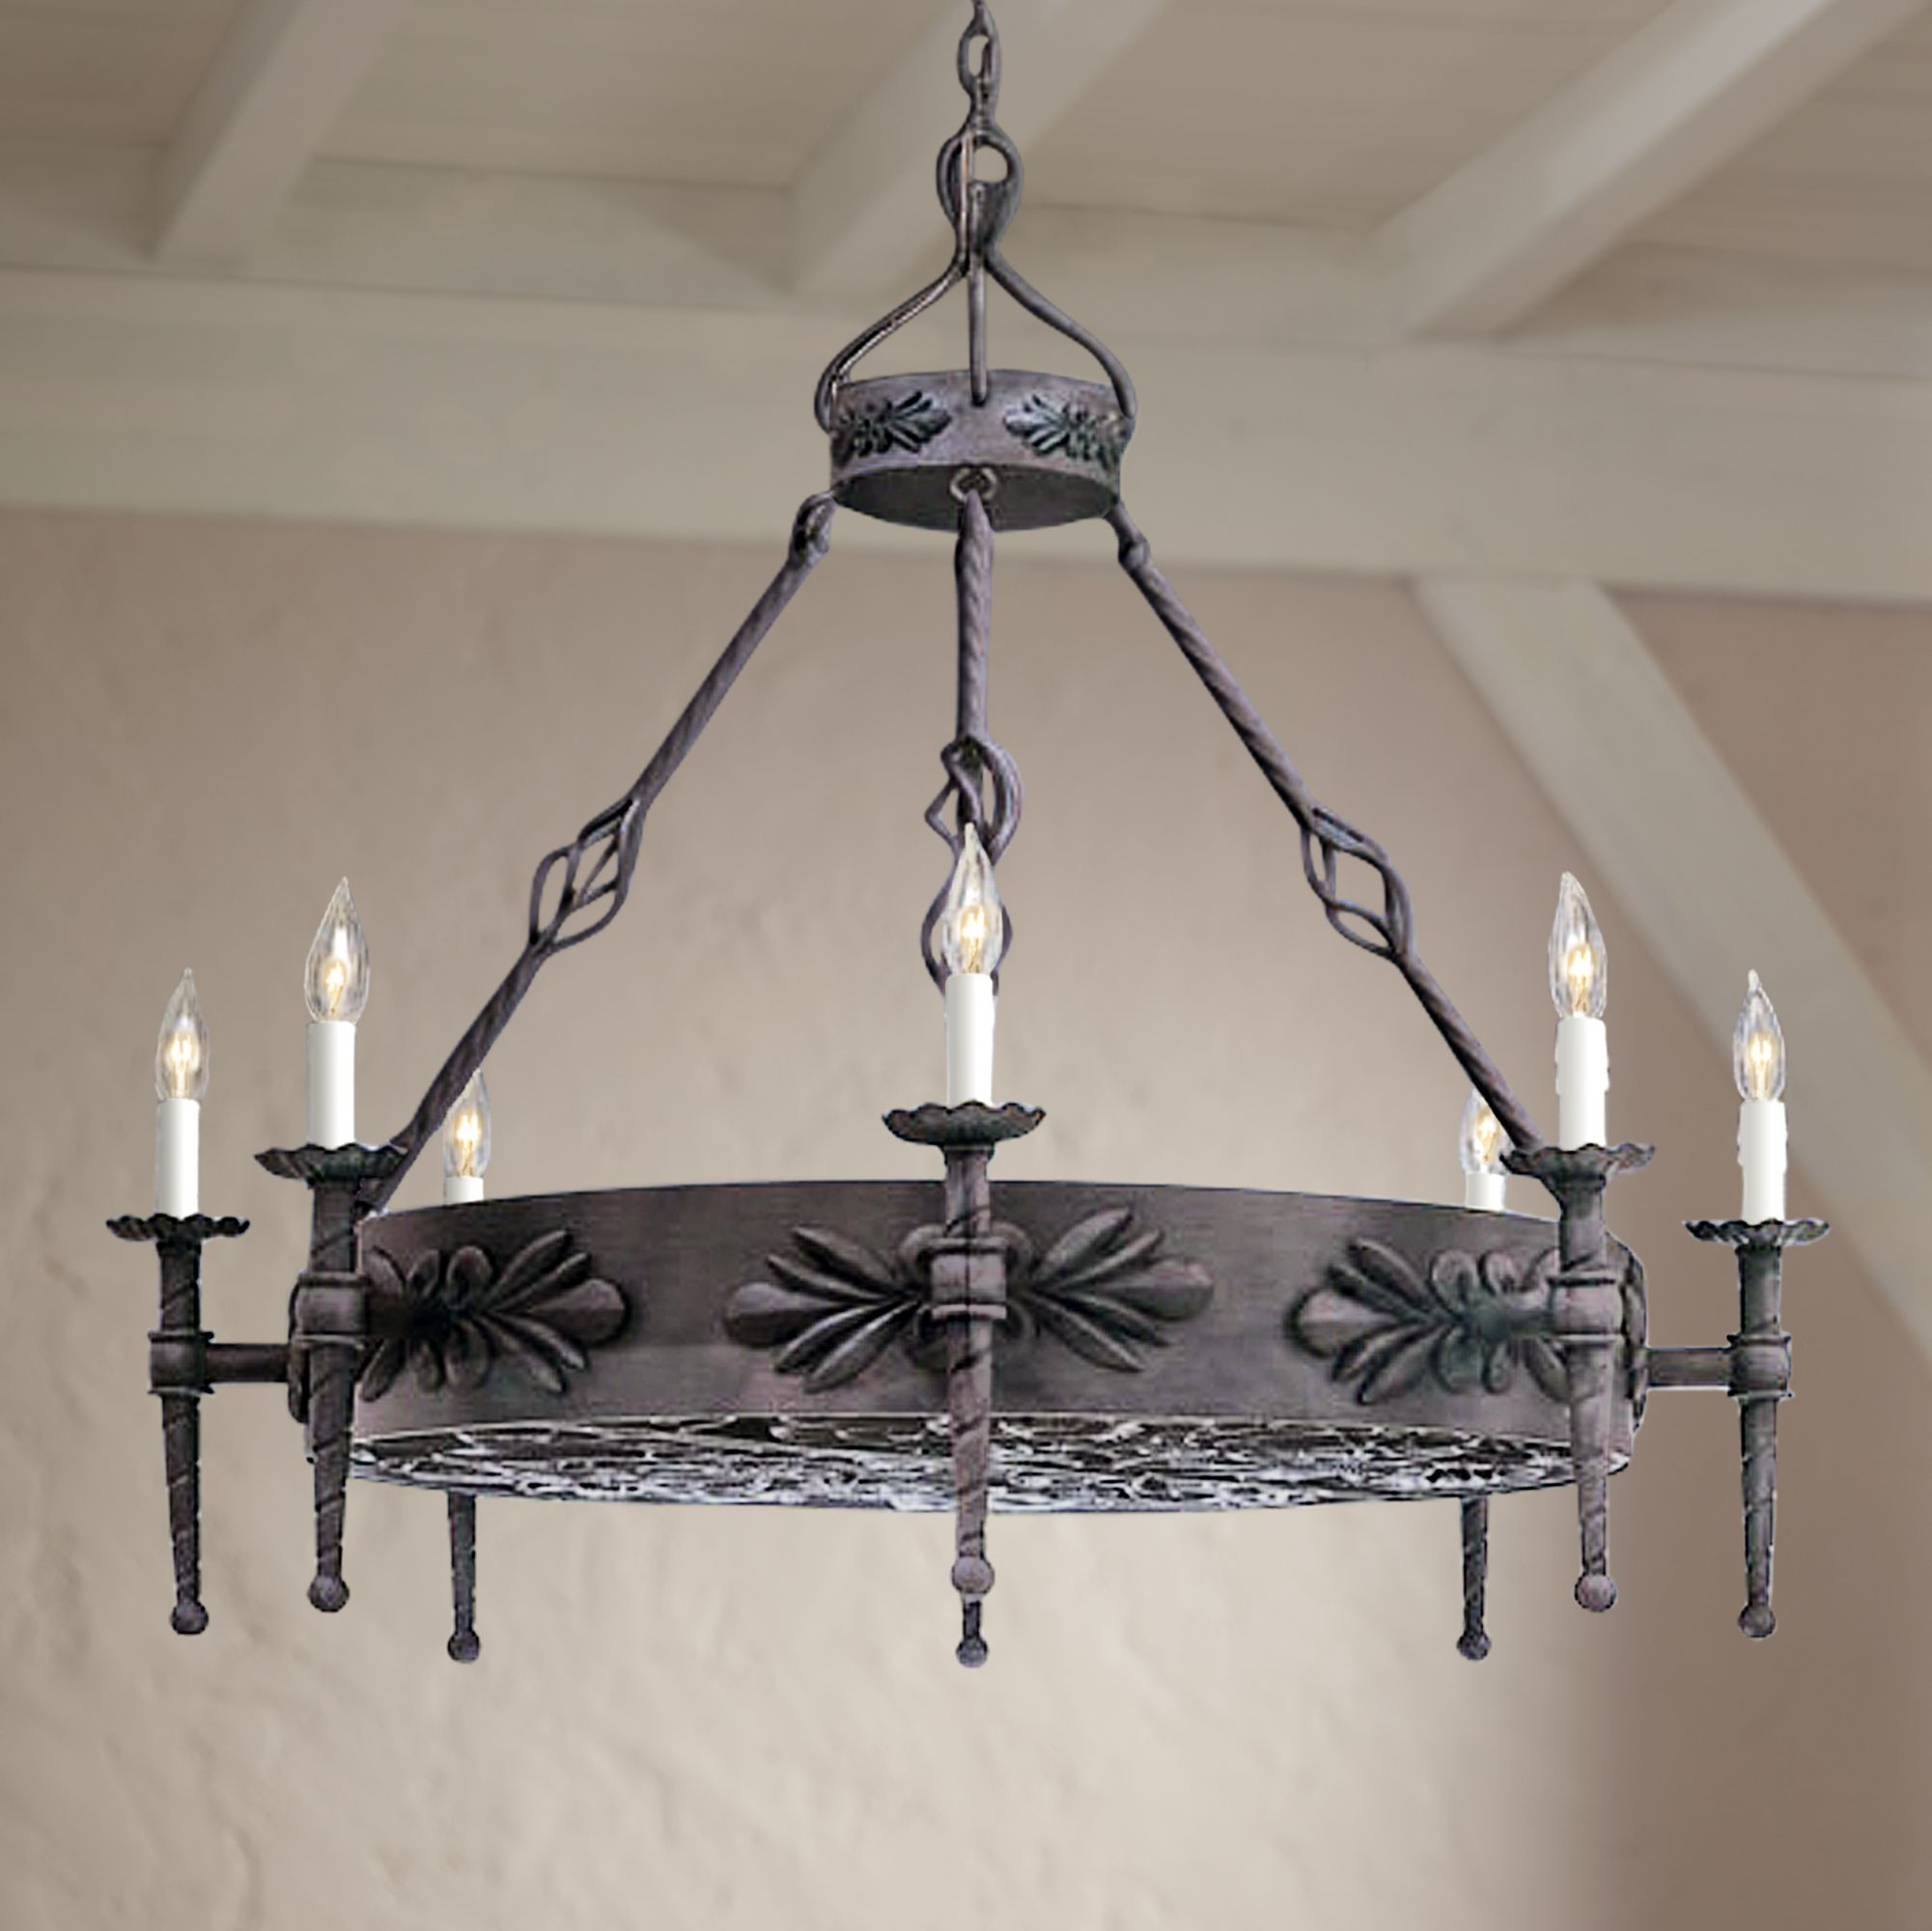 alhambra collection round large wrought iron chandelier - Wrought Iron Chandelier